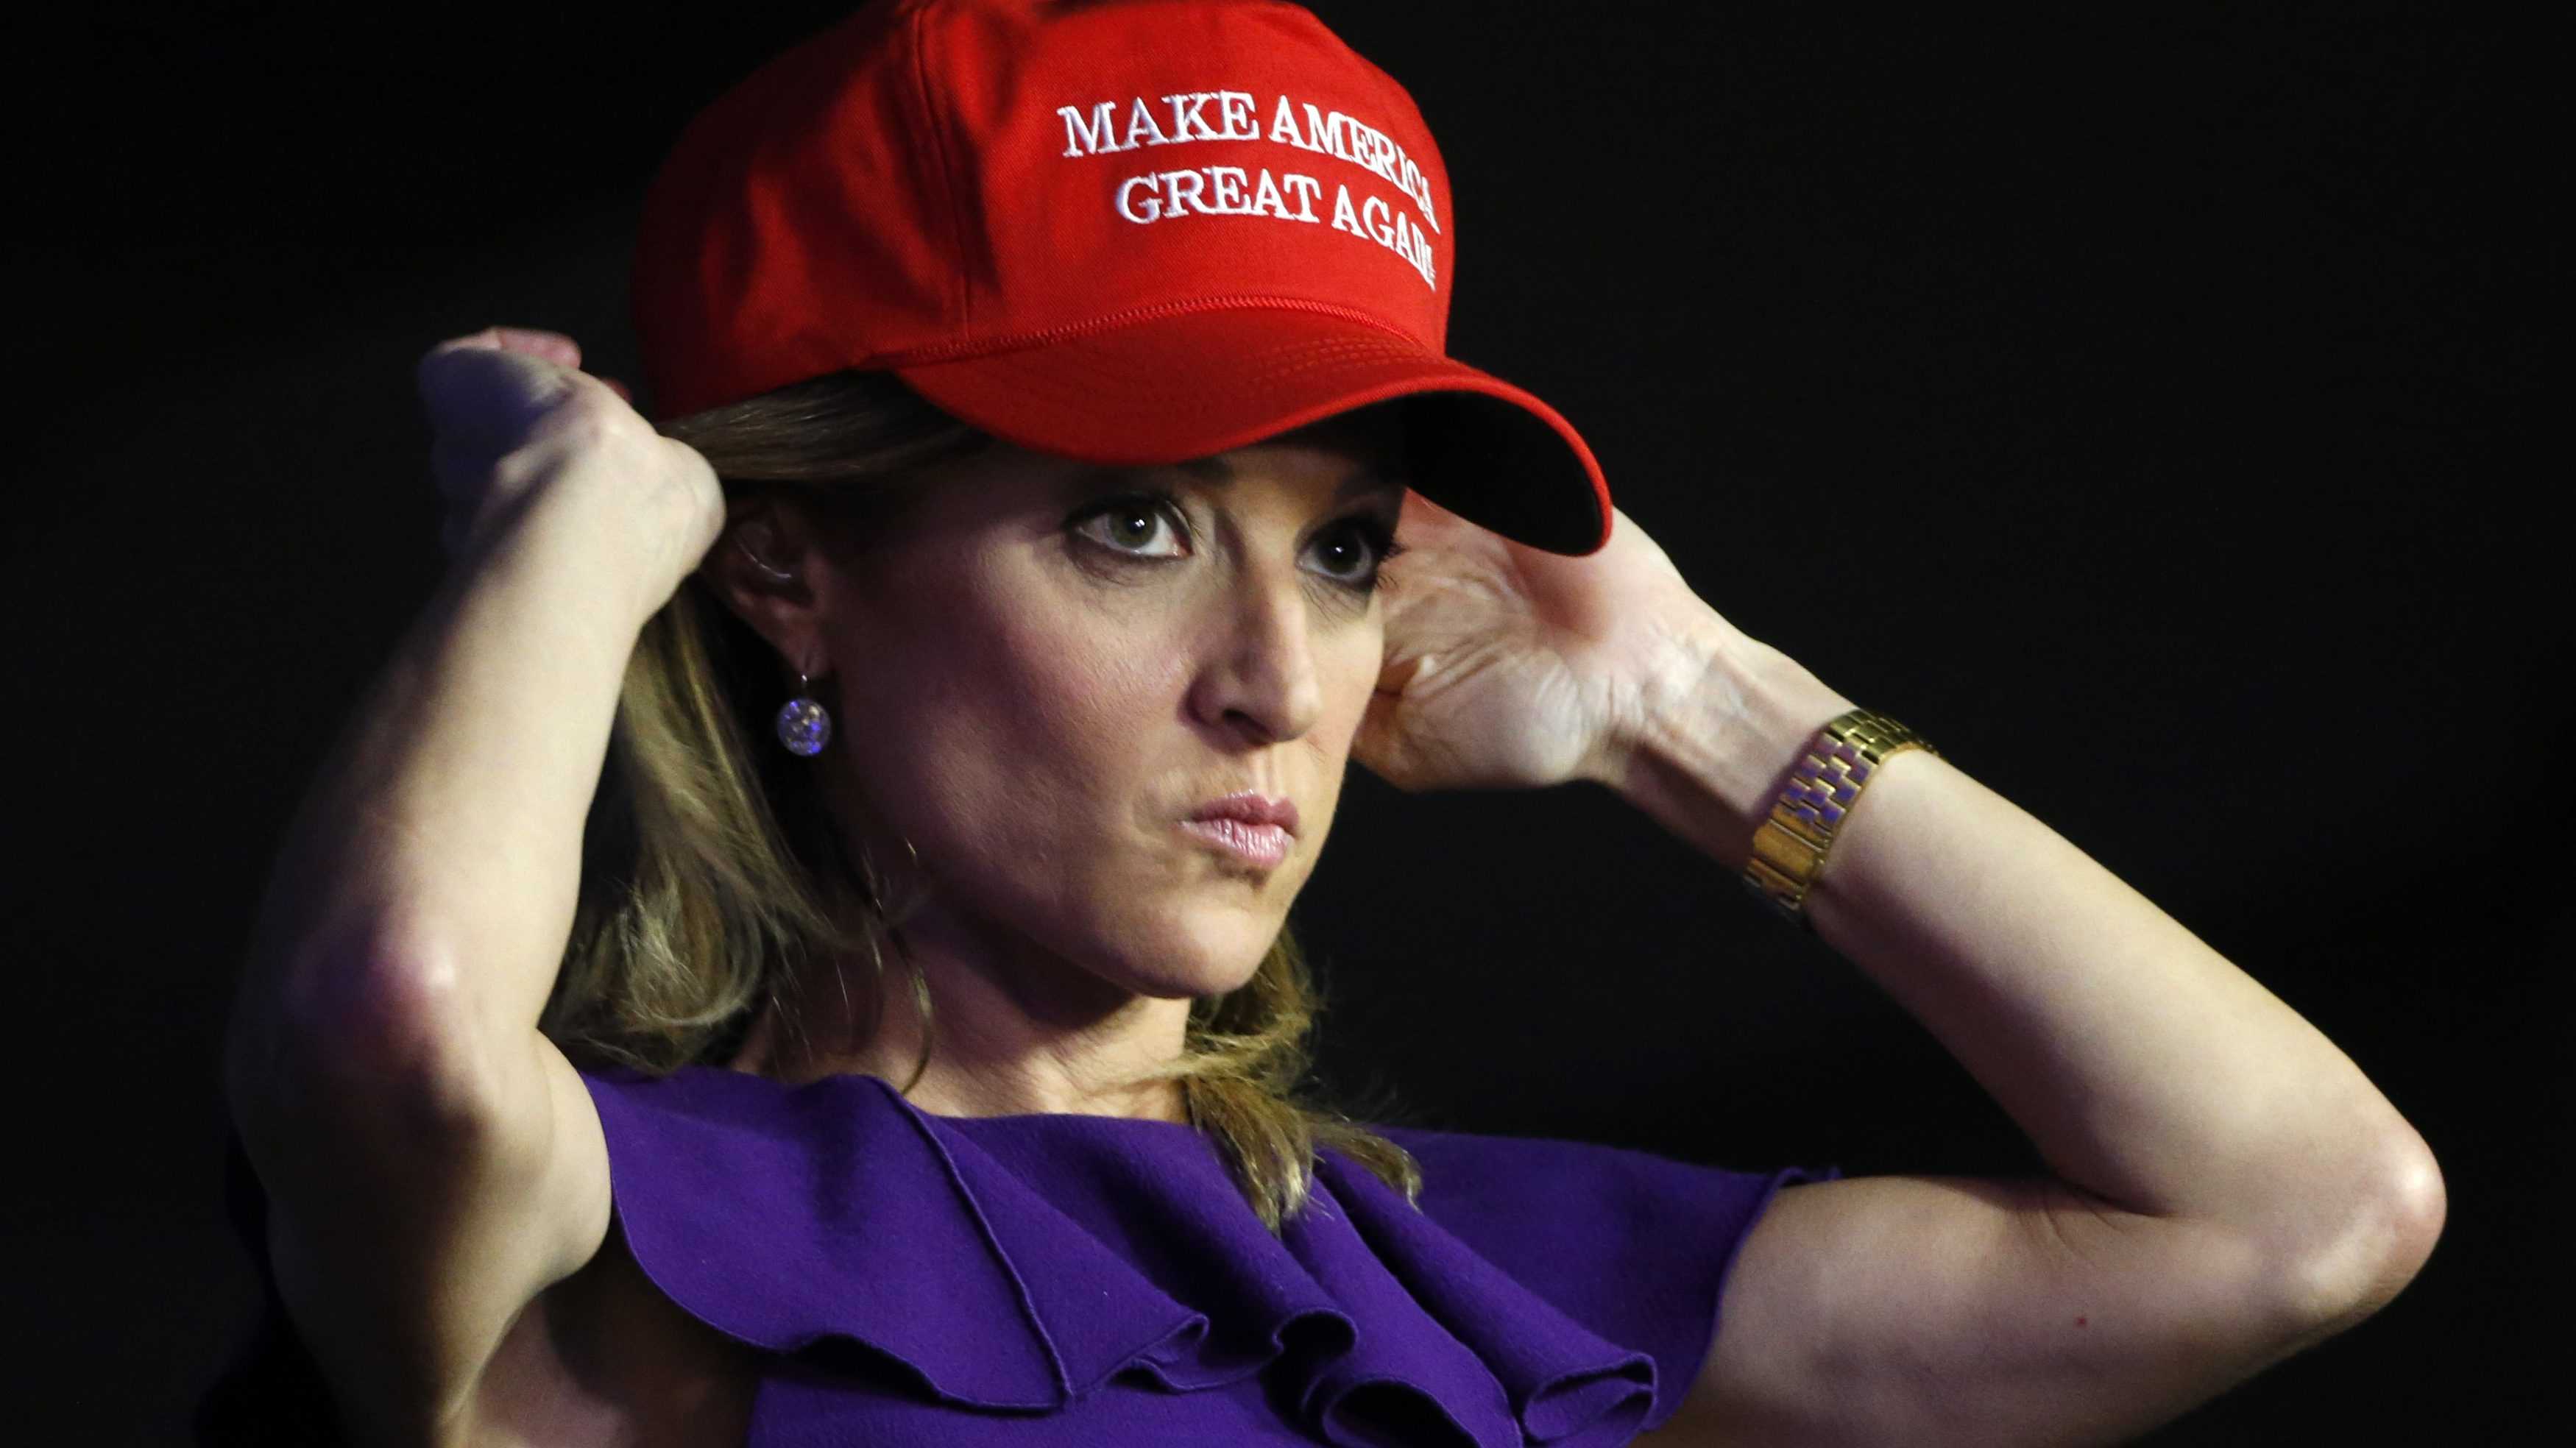 A Trump supporter adjusts her hat as she waits at Republican U.S. presidential nominee Donald Trump's election night rally in Manhattan, New York, U.S., November 8, 2016.